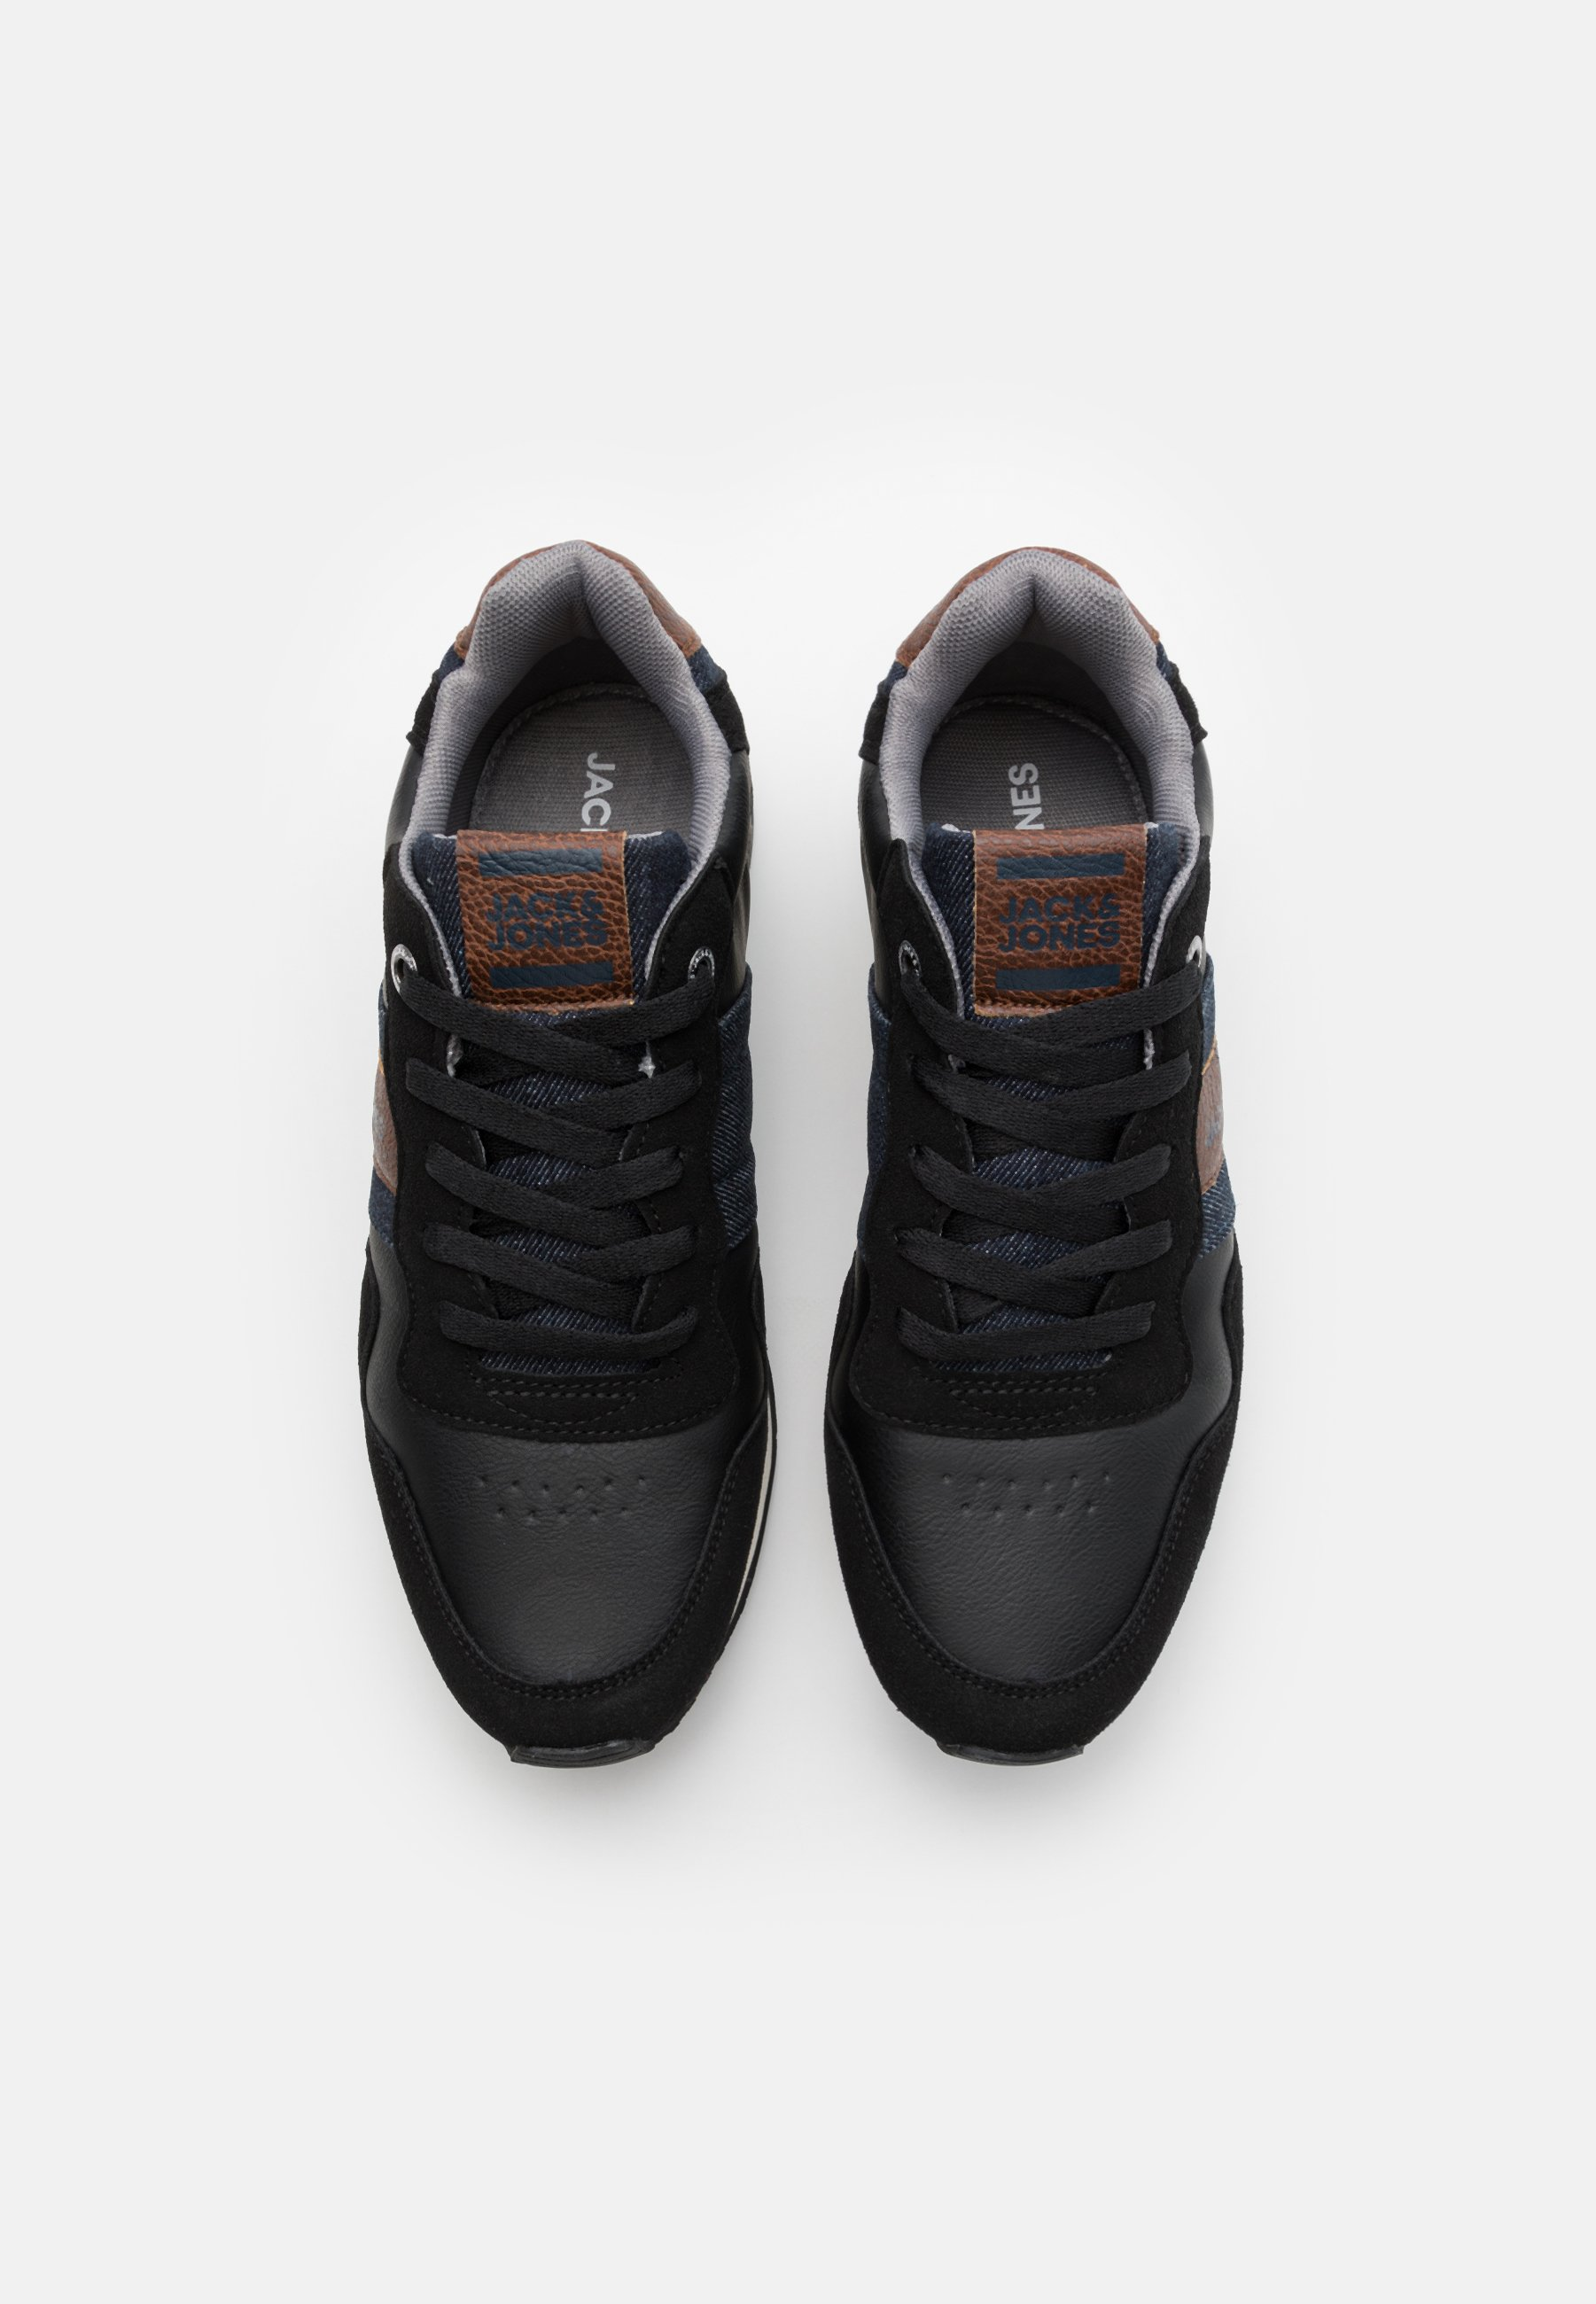 Jack & Jones Jfwstellar Casual - Sneakers Anthracite